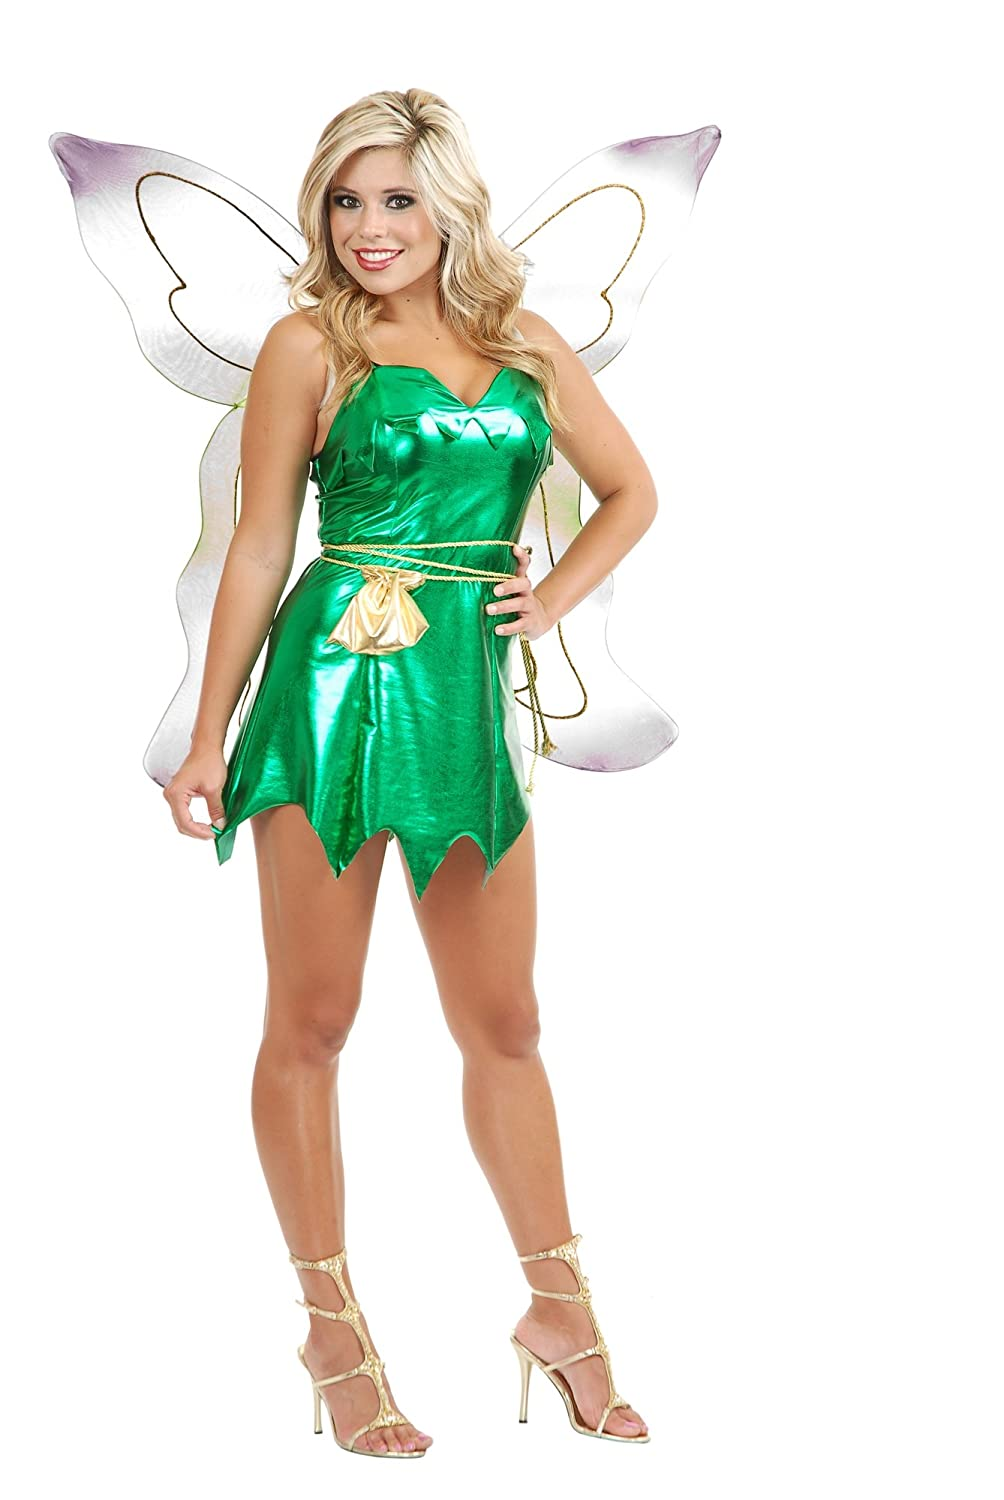 Tinkerbell Dress Cosplay Costume Adult Tinker Bell Party Dress From Peter Pan